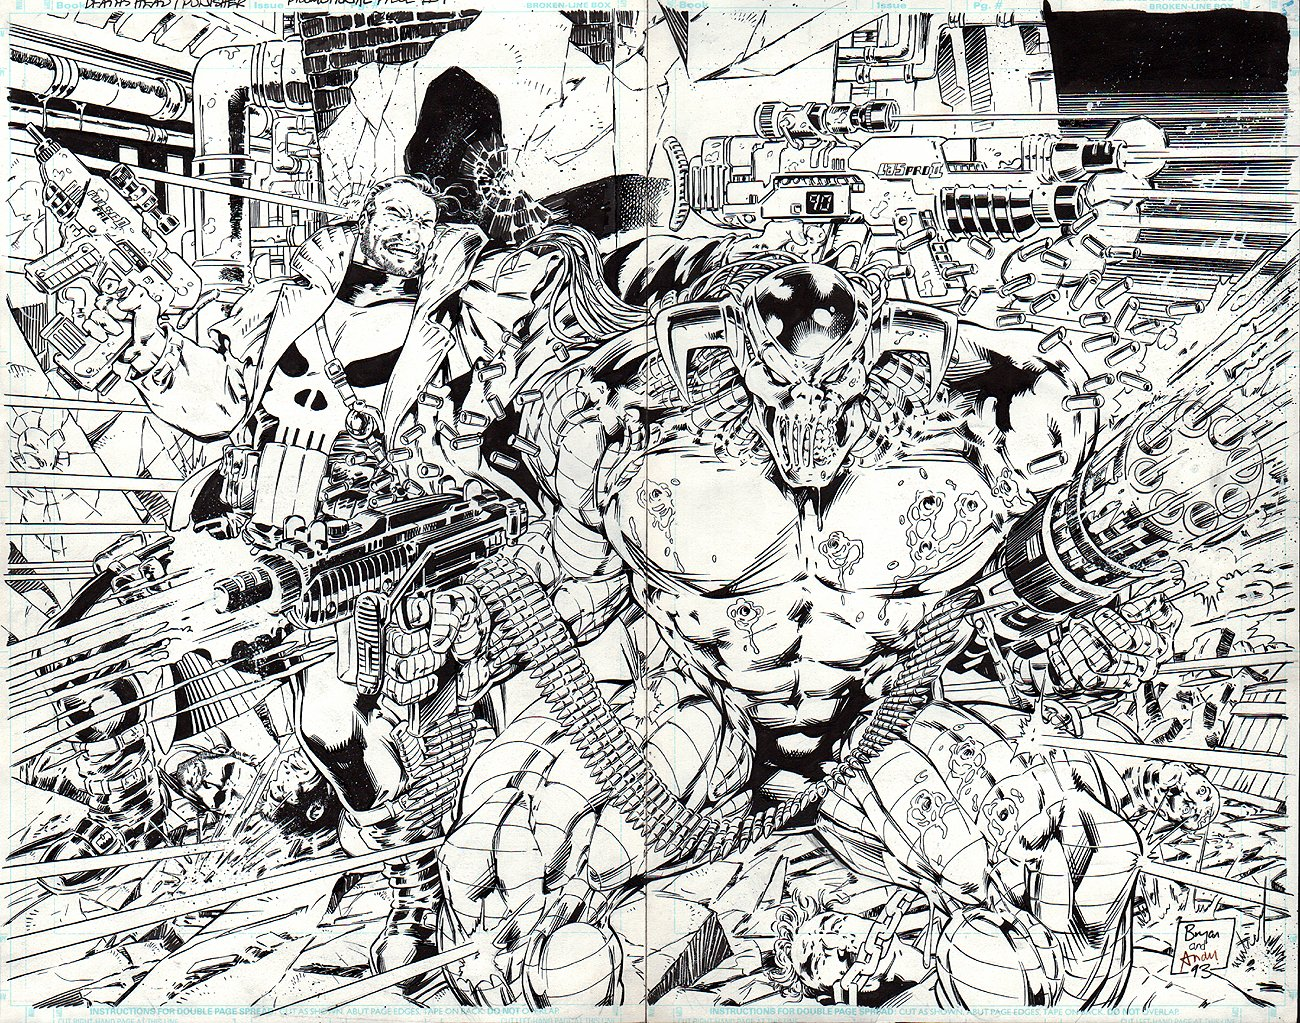 DEATHS HEAD II Vs. THE PUNISHER #1 Wraparound Promo Poster / Unpublished Cover (1993)